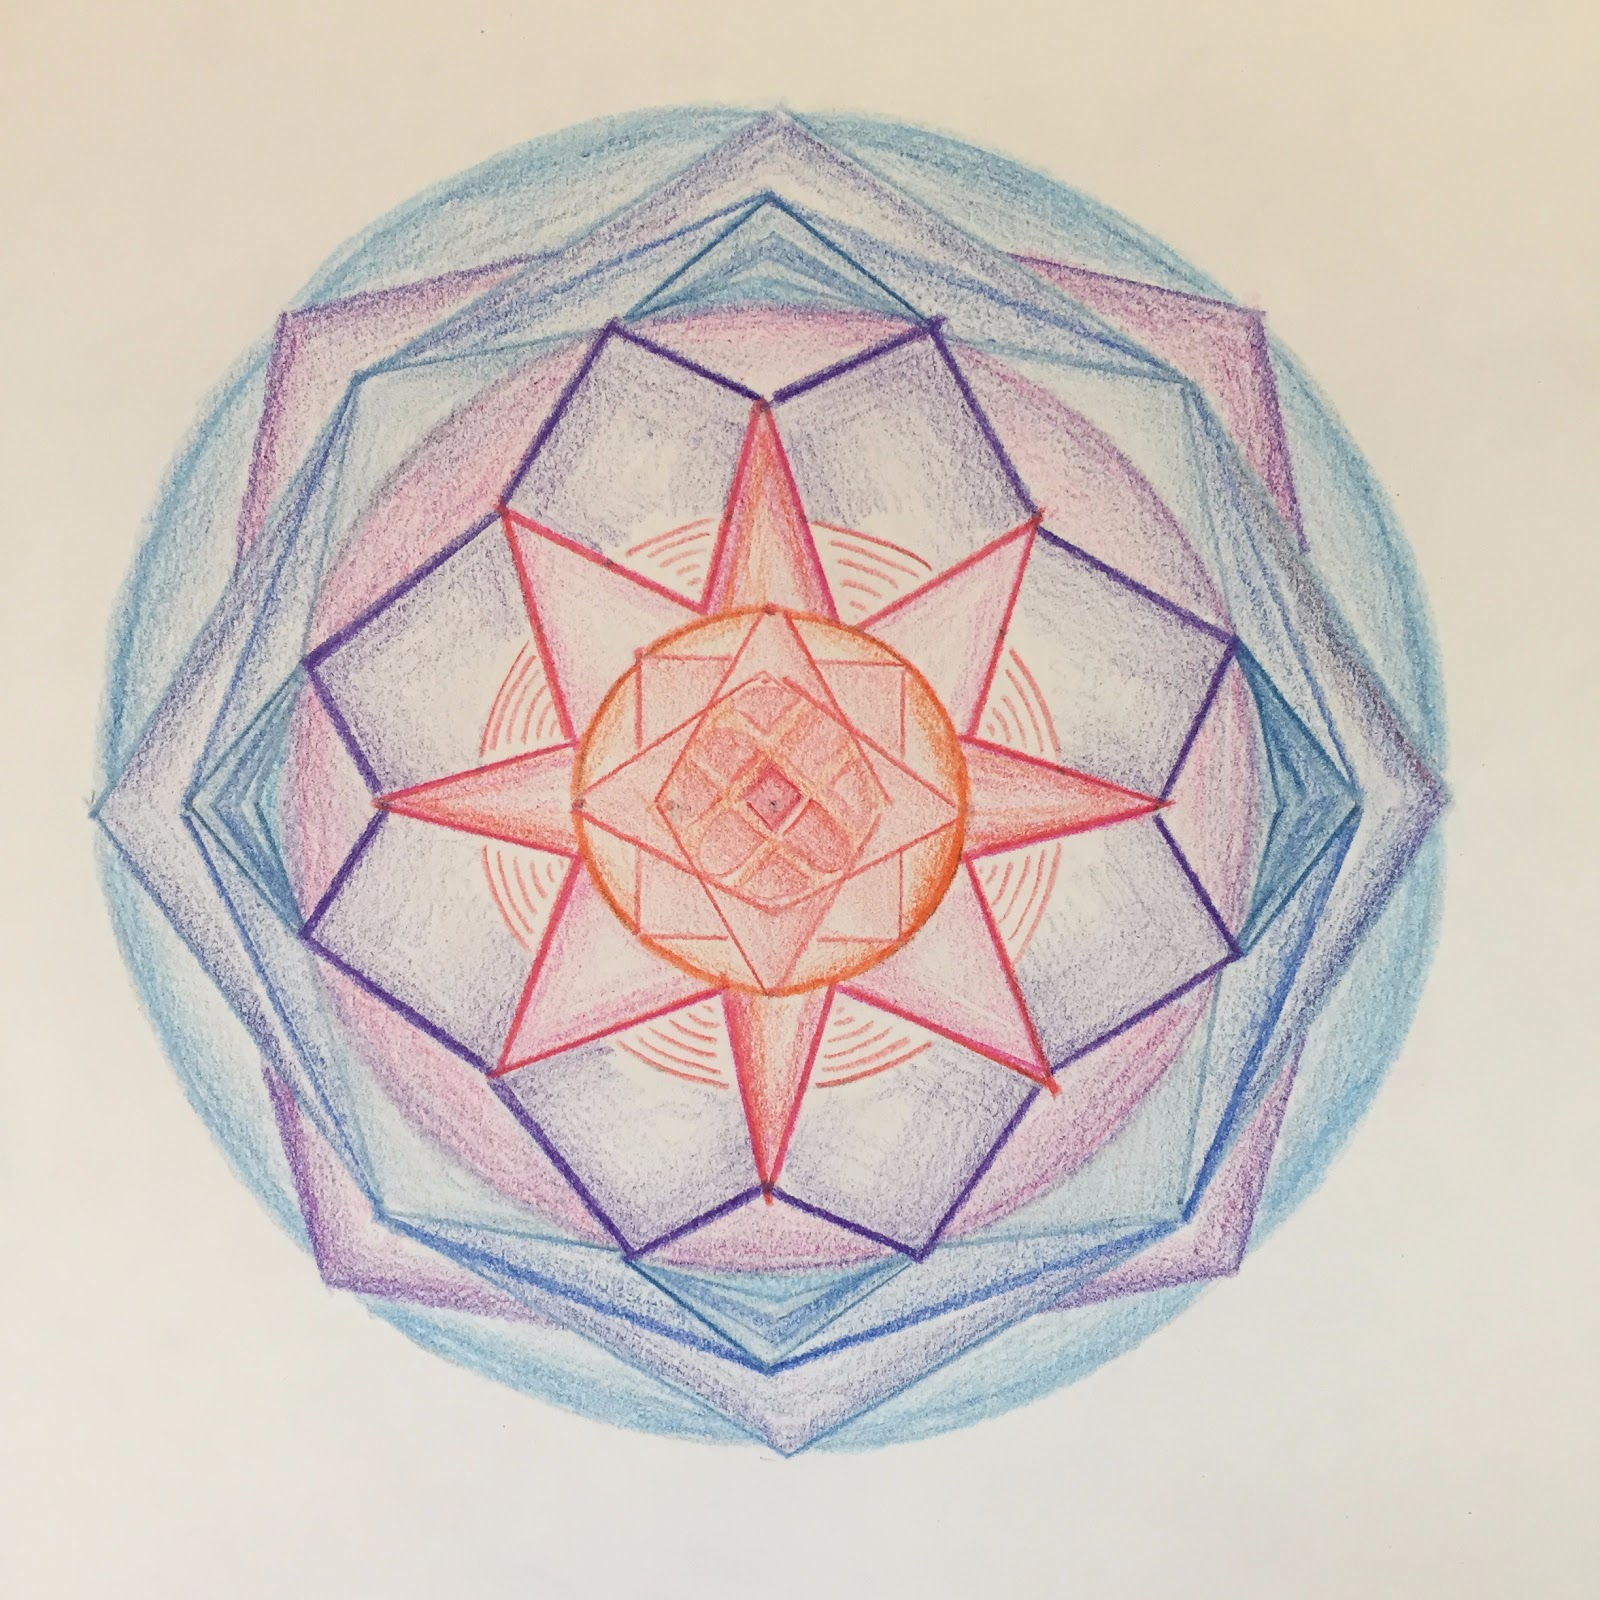 Pictured Below A Mandala That I Created As Break From Writing My Dissertation